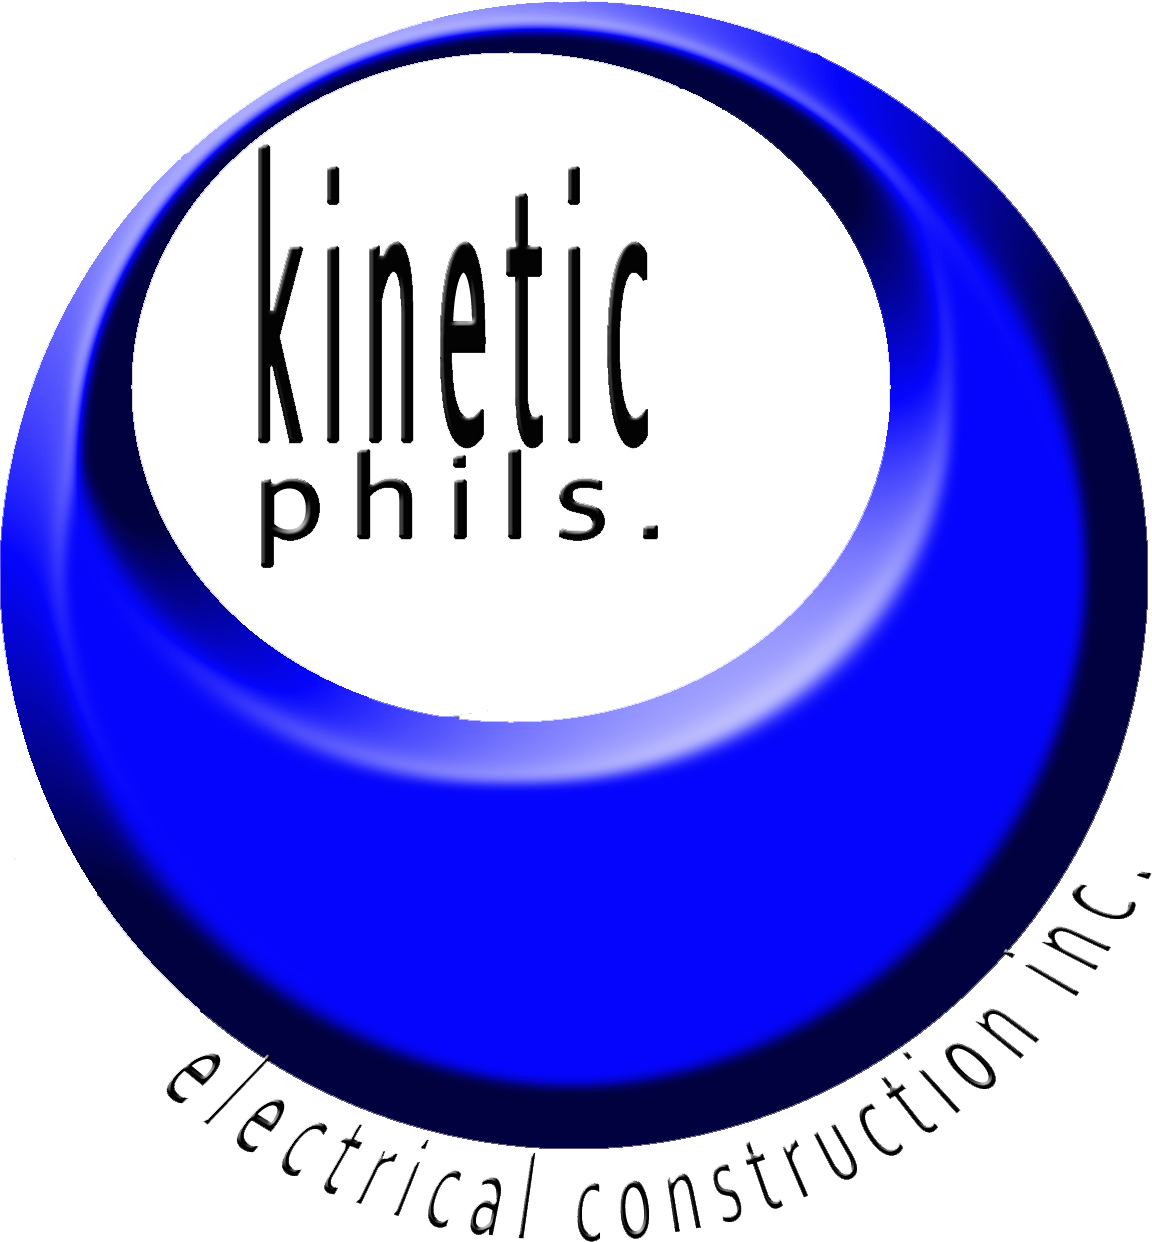 Kinetic Phils. Electrical Construction Inc.